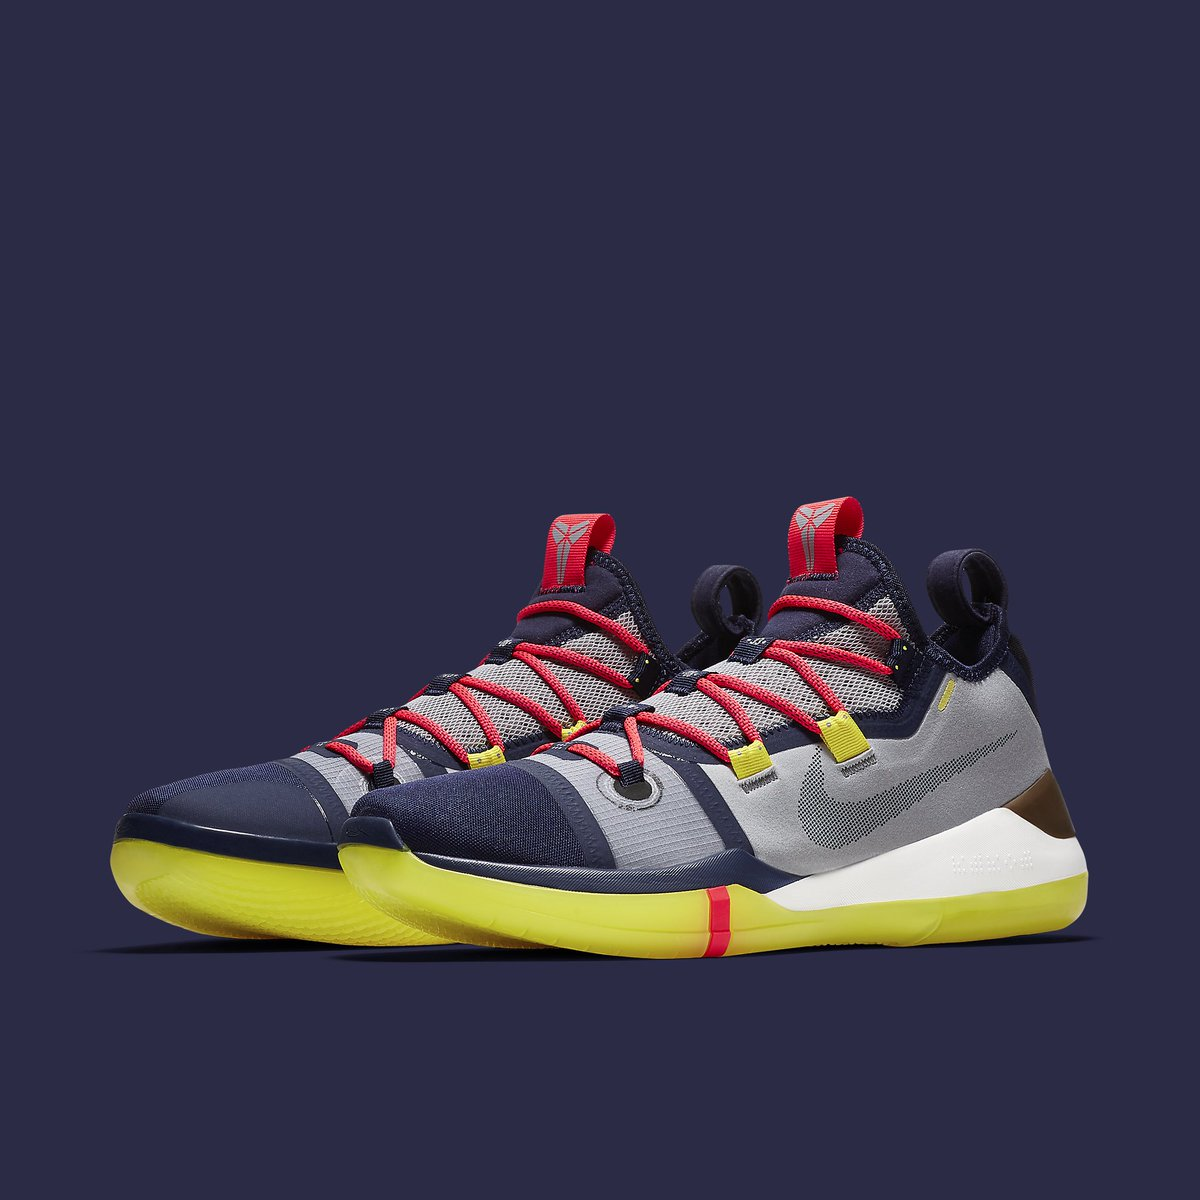 c81c1a2dba788 nike kobe ad rumored mamba day aug 24 release date for 140